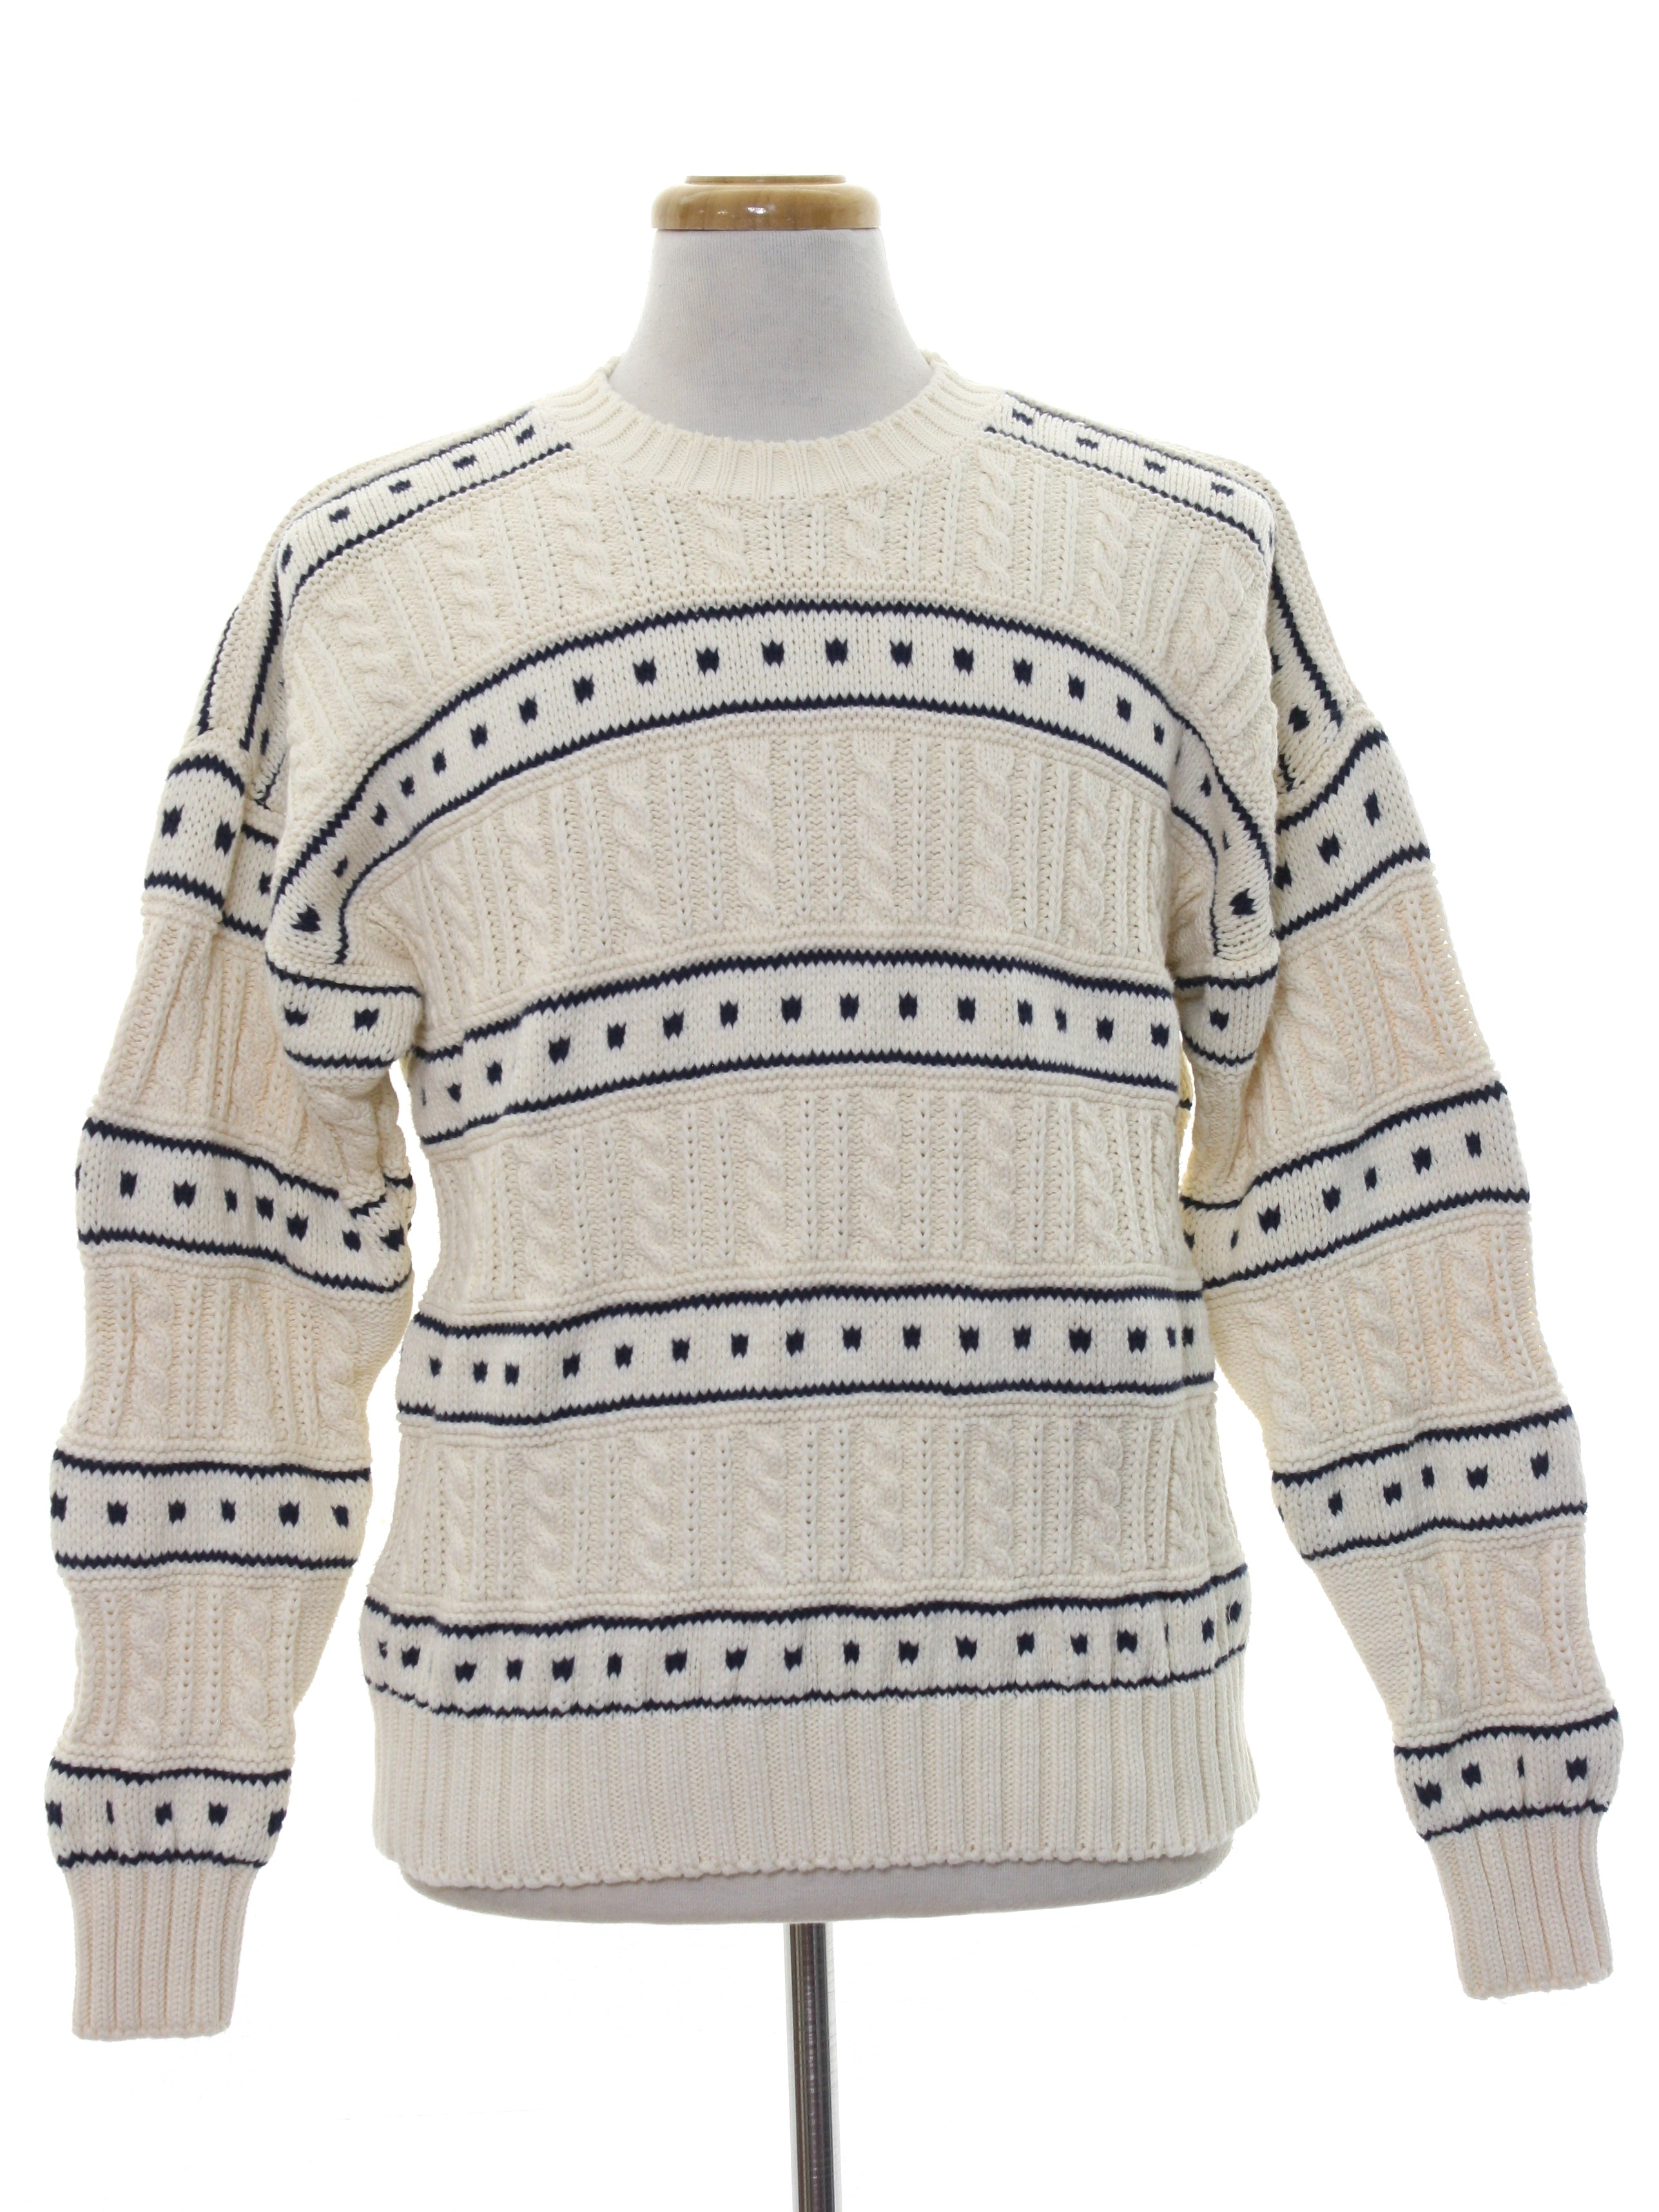 80s Vintage Nile Sweater: Late 80s -Nile- Mens cream with midnight ...